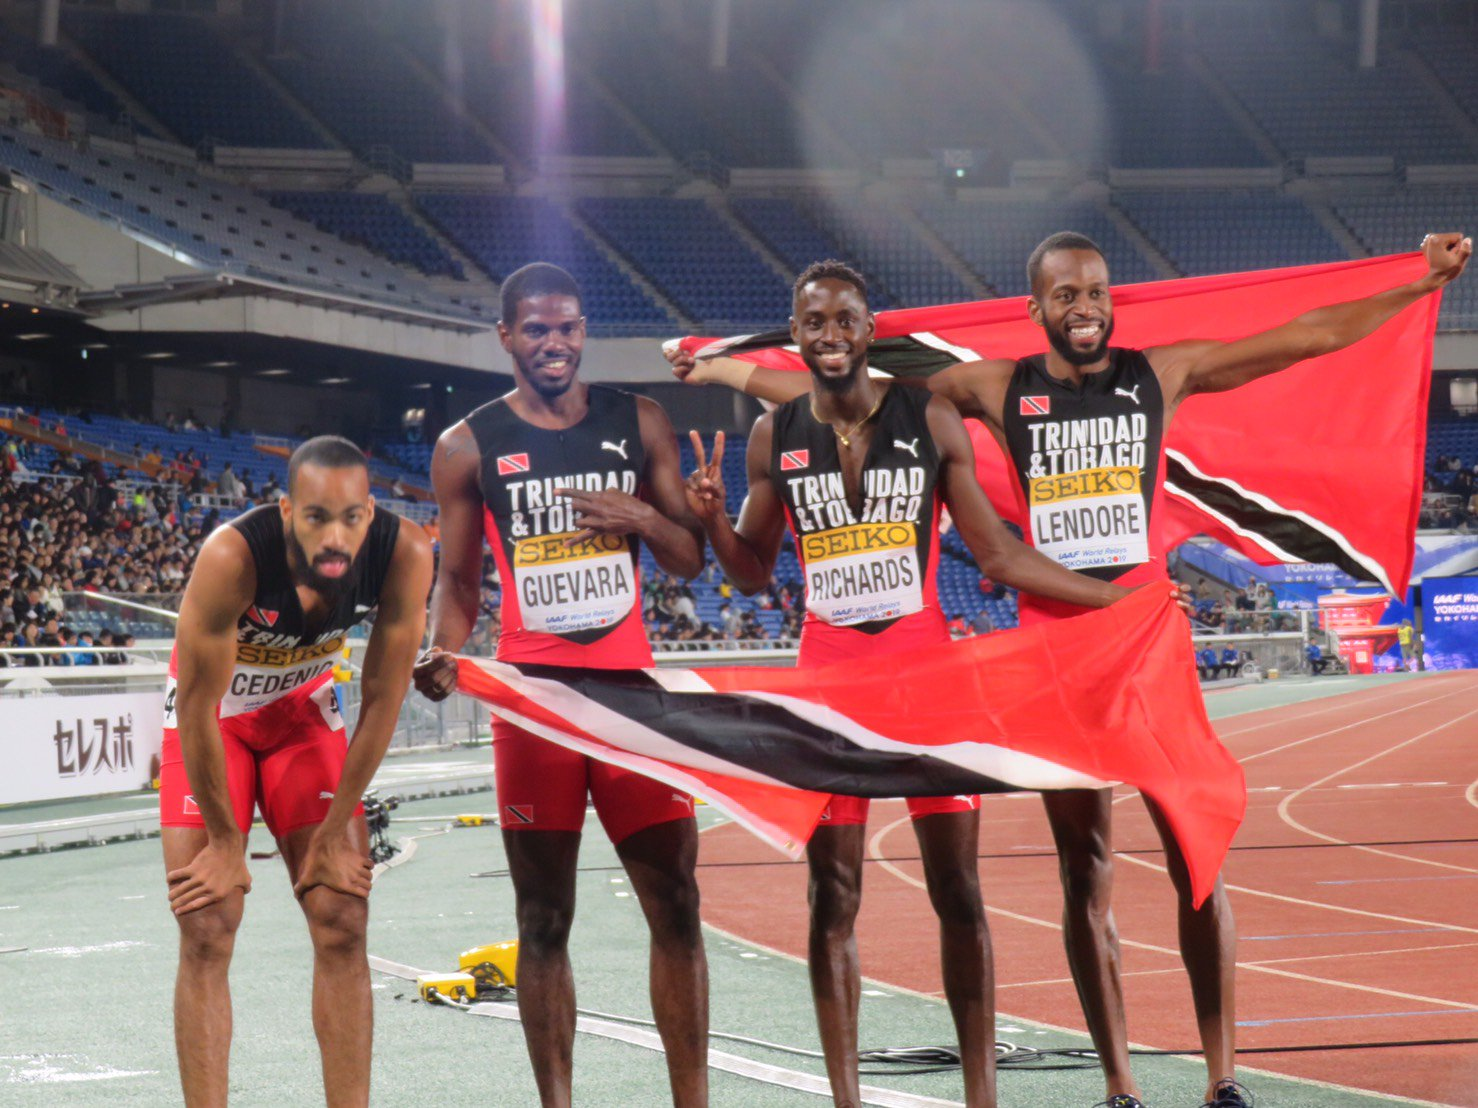 TT's  champion quartet (from left) Machel Cedenio, Asa Guevara, Jereem Richards and Deon Lendore with the national flag after winning the 4x400m final at the IAAF World Relays in Yokohama, Japan today. PHOTO COURTESY IAAF WORLD RELAYS